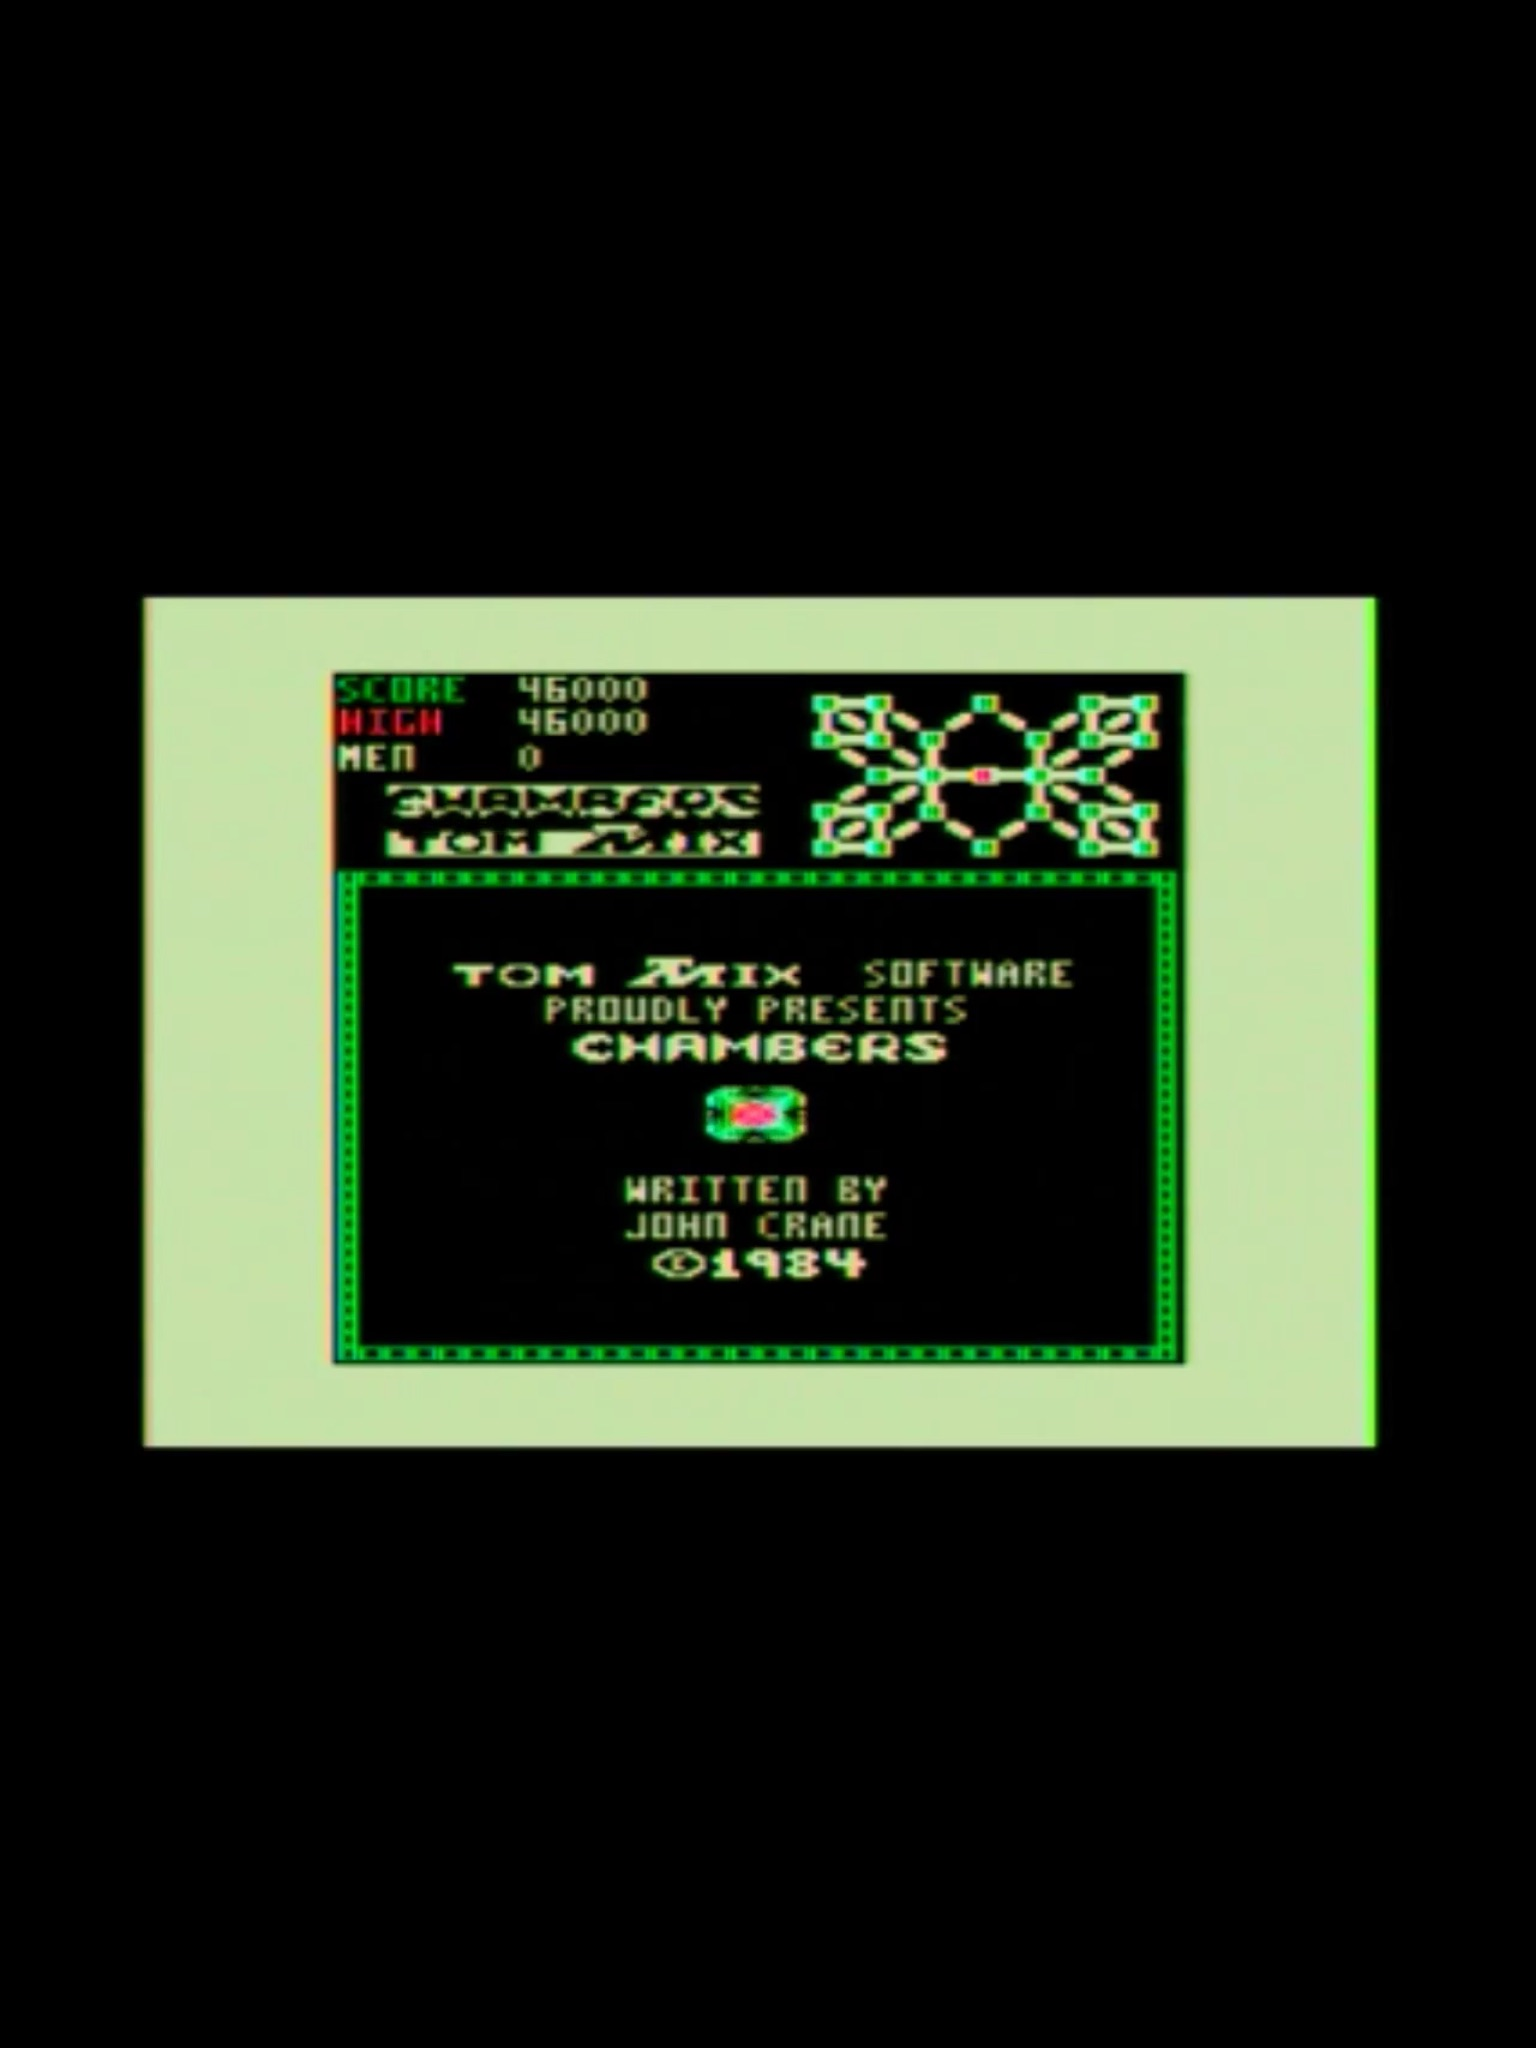 CoCoForest: Chambers (Dragon 32/64) 46,000 points on 2015-08-20 01:46:43